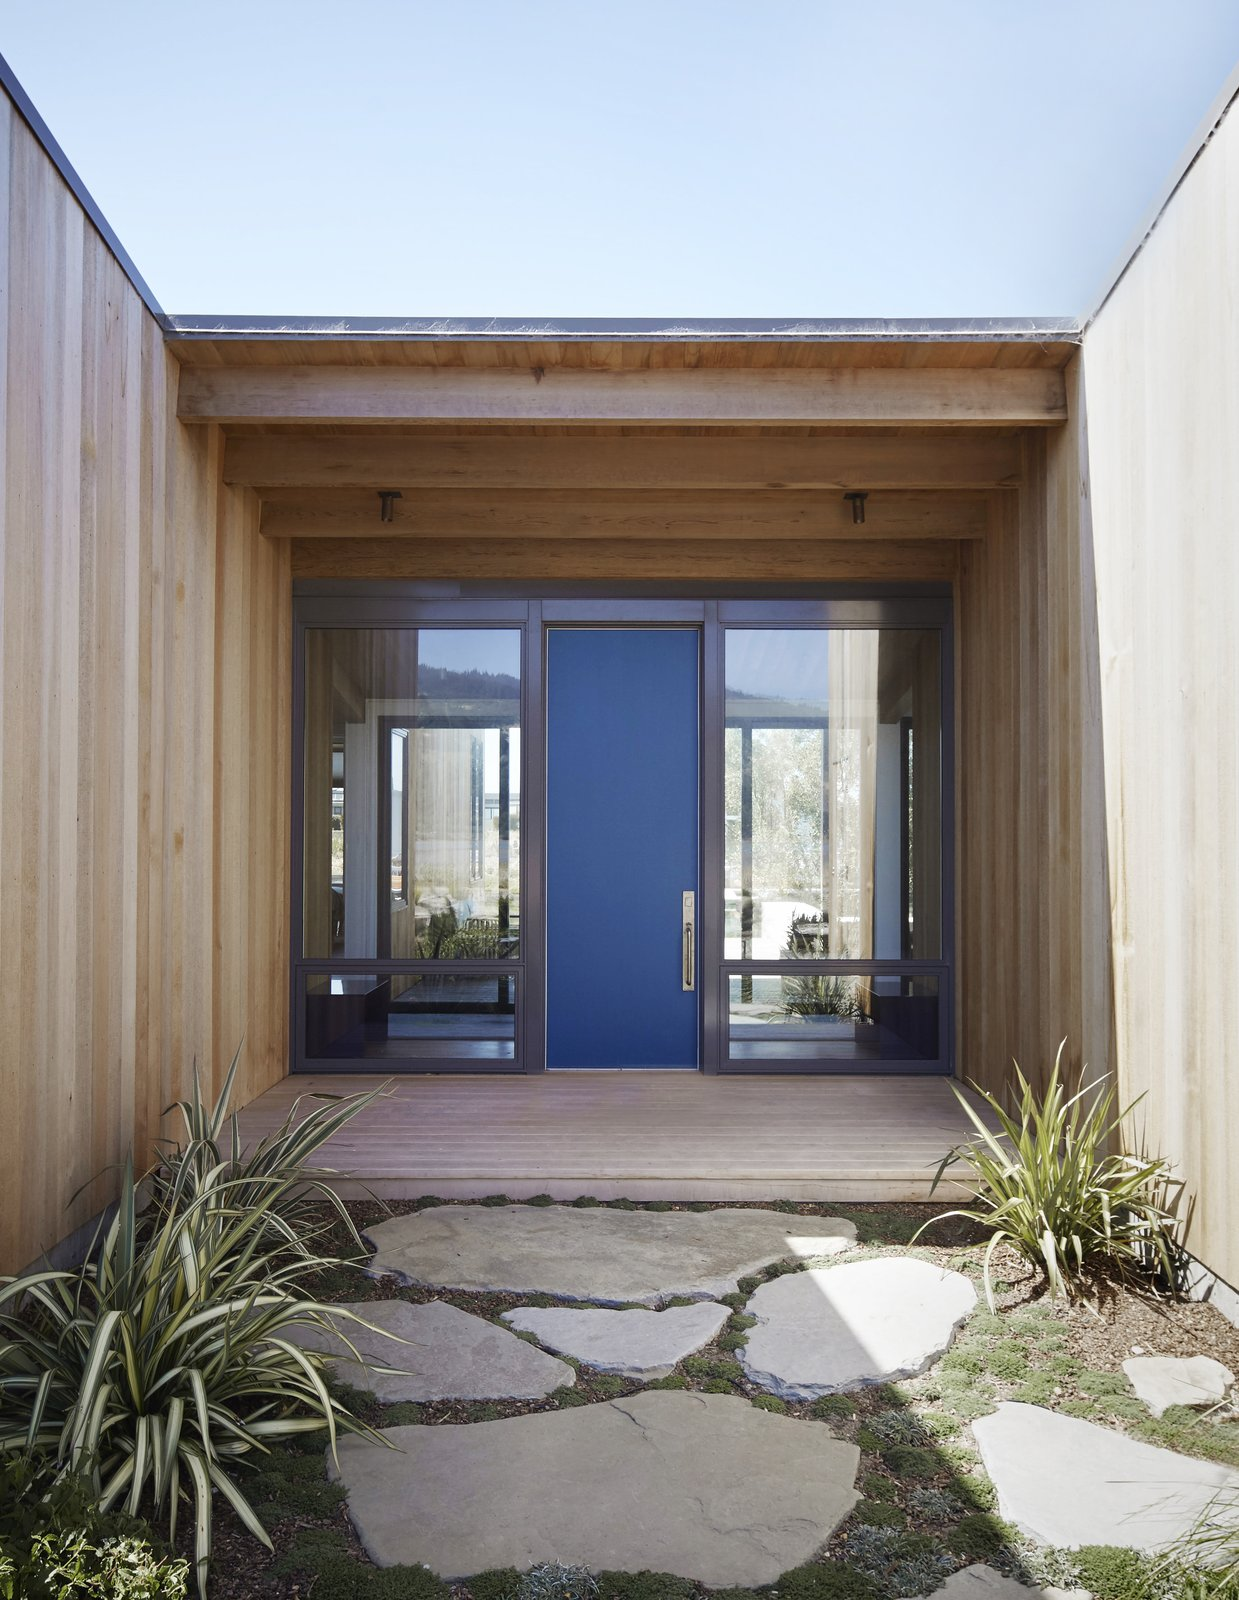 #TurnbullGriffinHaesloop #outdoor #exterior #entry #window   Stinson Beach Lagoon Residence by Turnbull Griffin Haesloop Architects